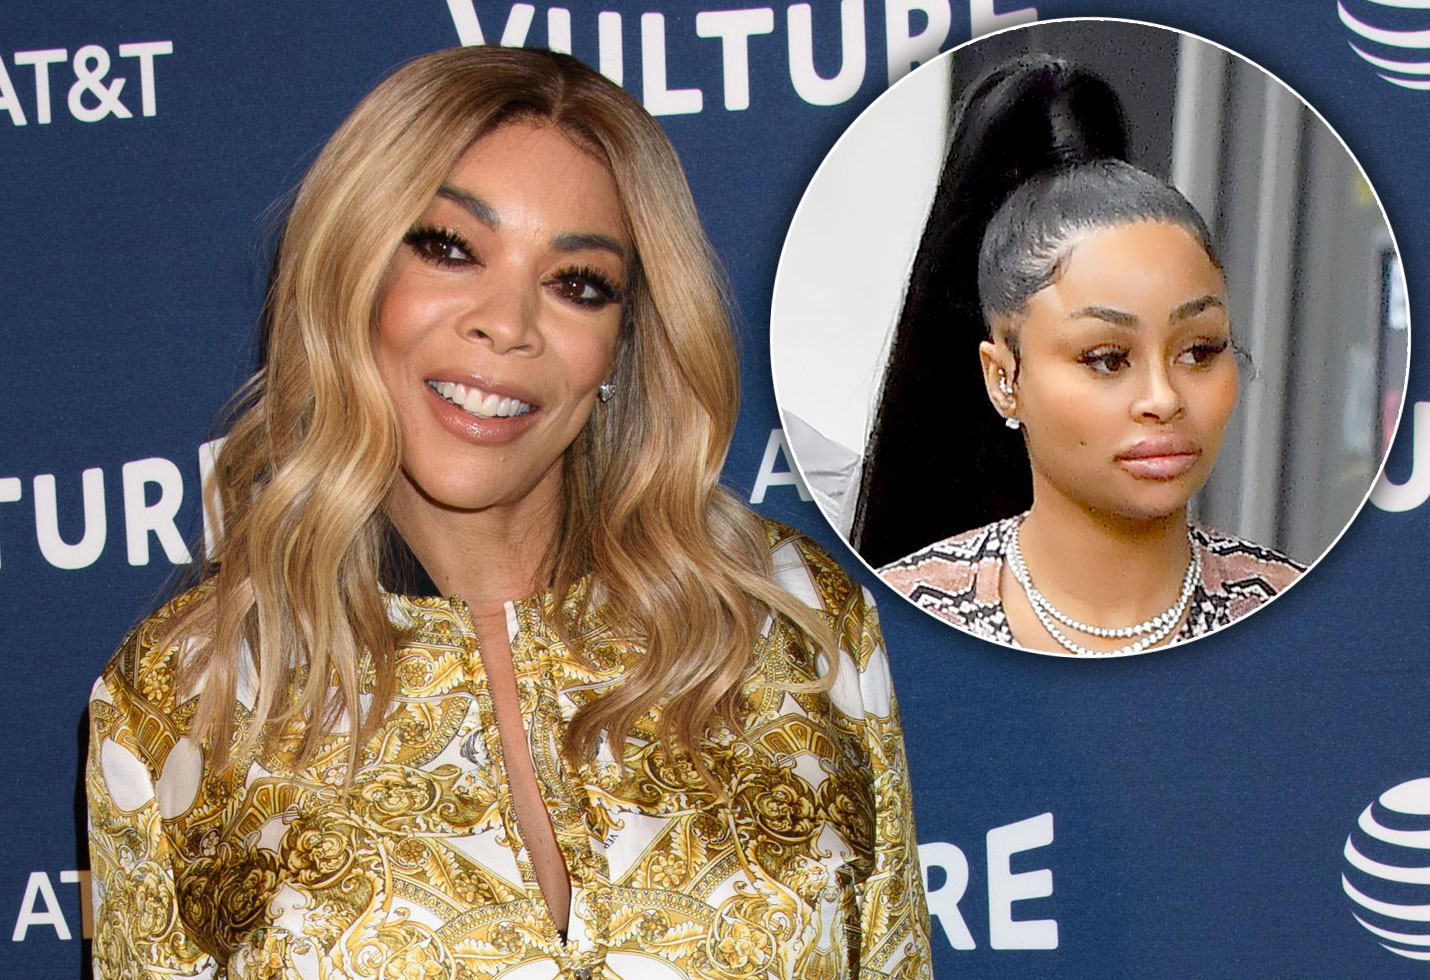 wendy-williams-links-up-with-blac-chyna-and-calls-her-little-sister-after-hanging-out-with-the-kardashians